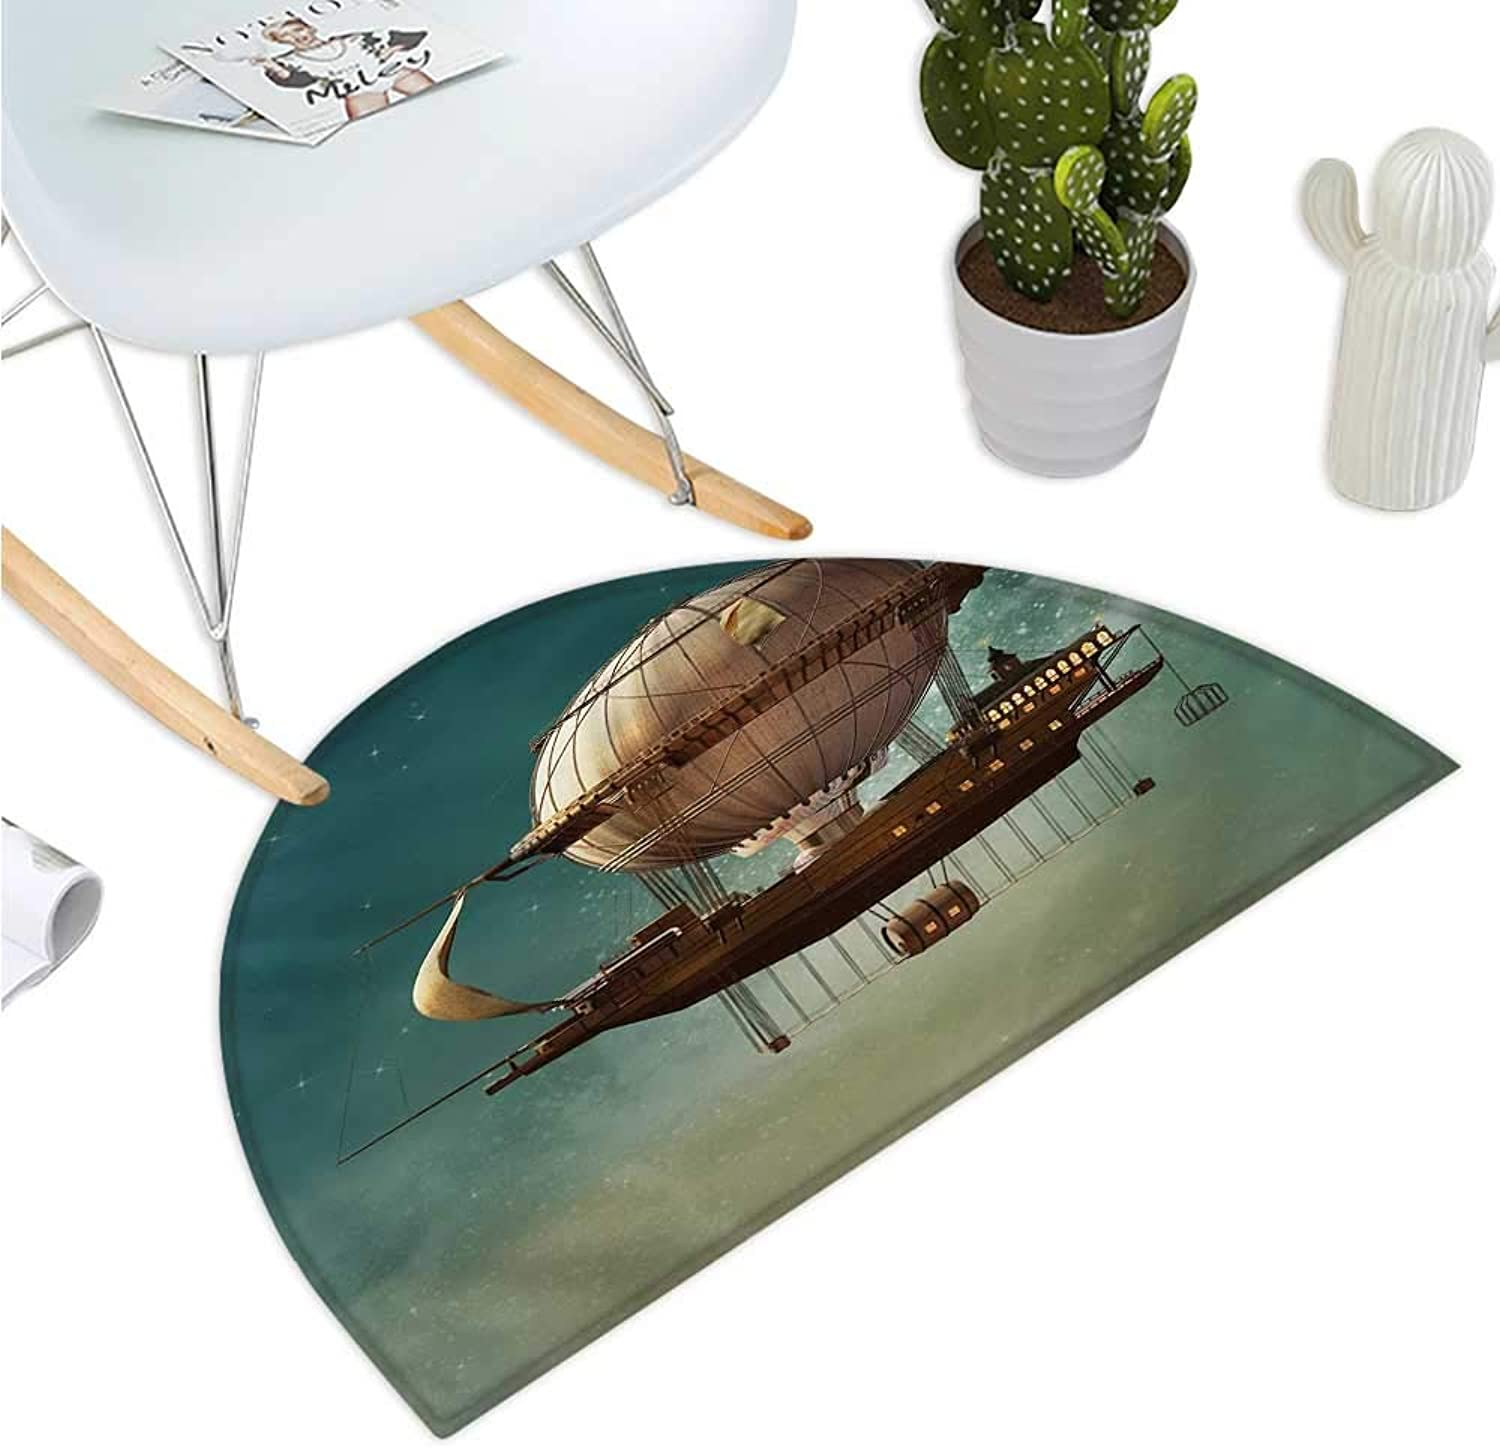 Fantasy Semicircular Cushion Surreal Sky Scenery with Steampunk Airship Fairy Sci Fi Stardust Space Image Halfmoon doormats H 39.3  xD 59  Teal and Brown